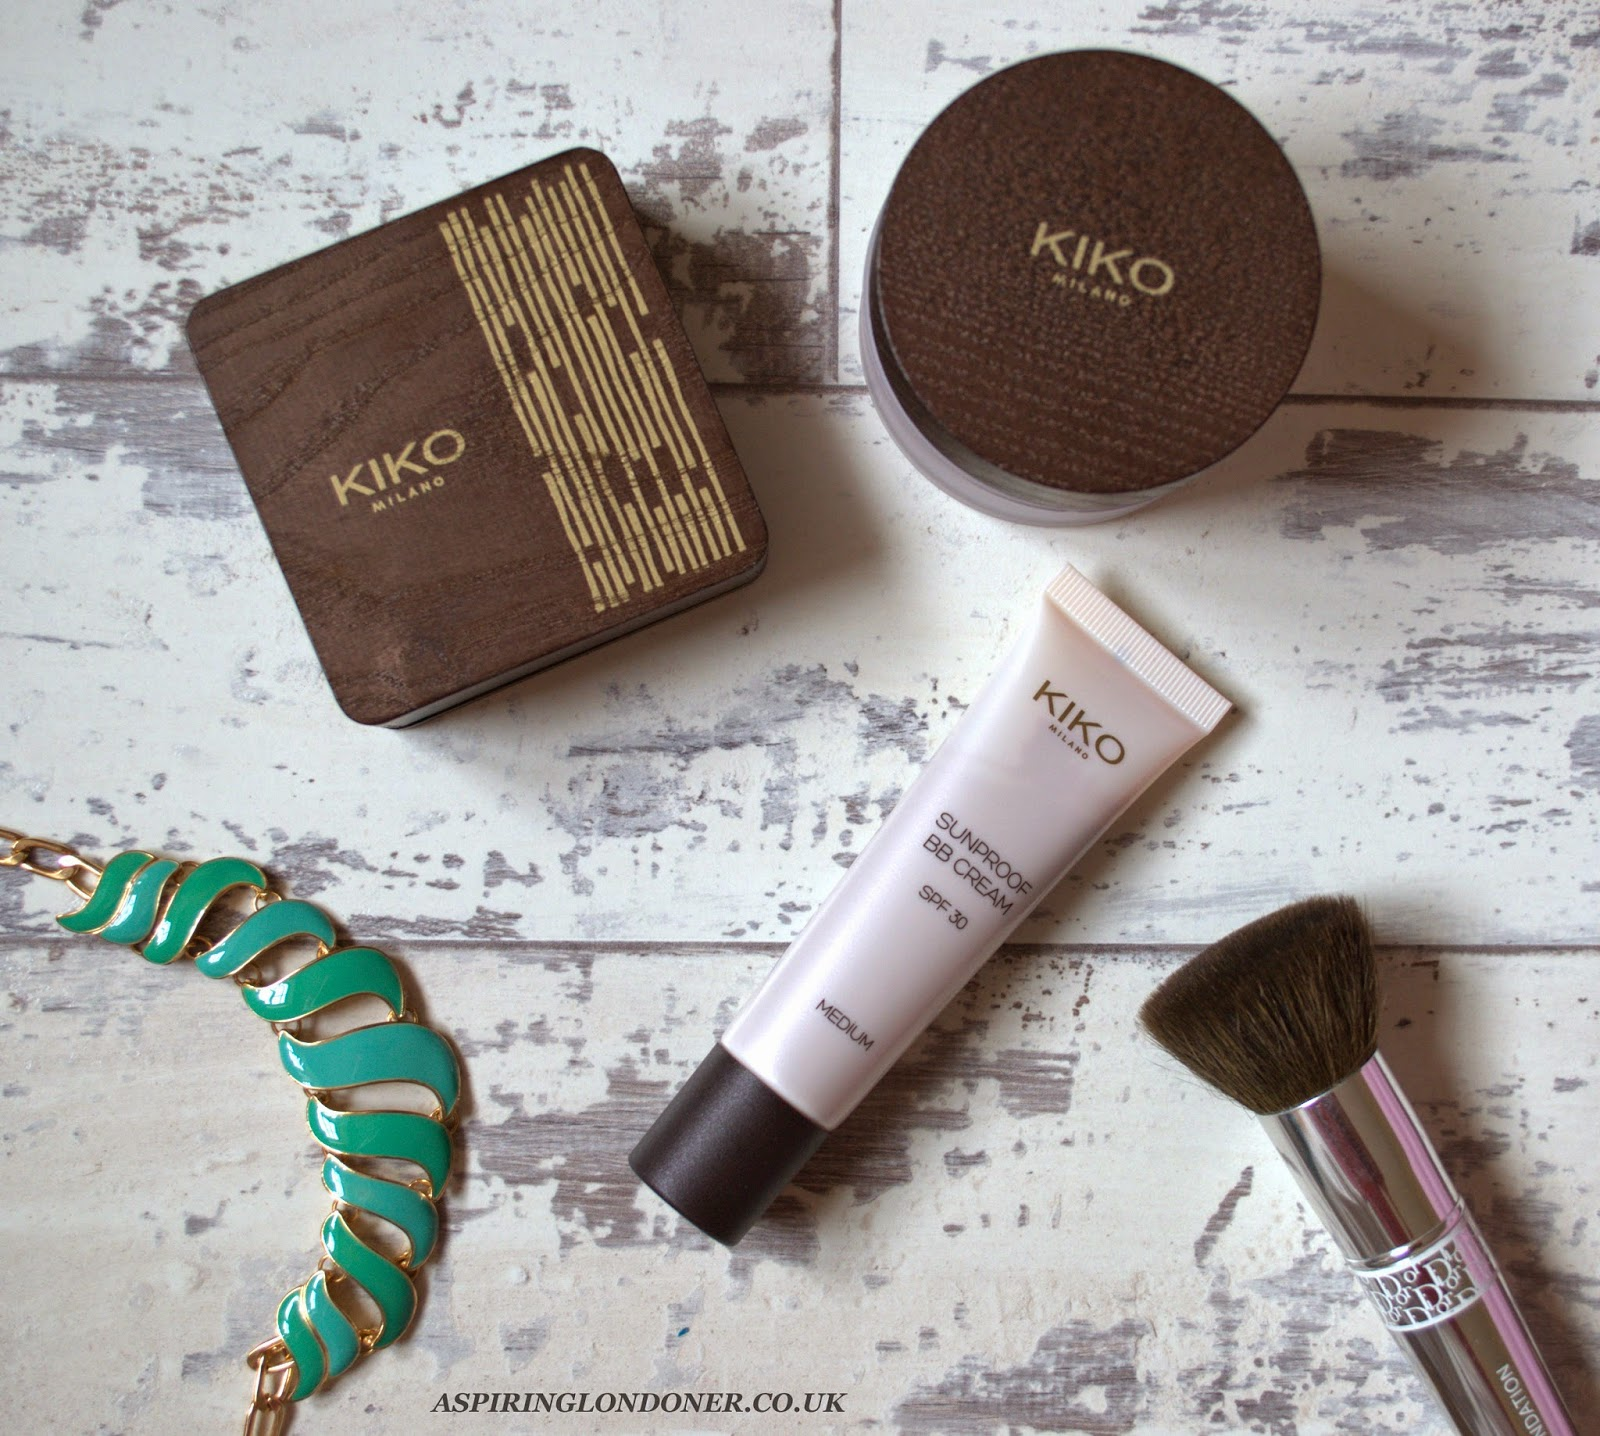 Kiko Cosmetics Modern Tribes Collection Review - Aspiring Londoner